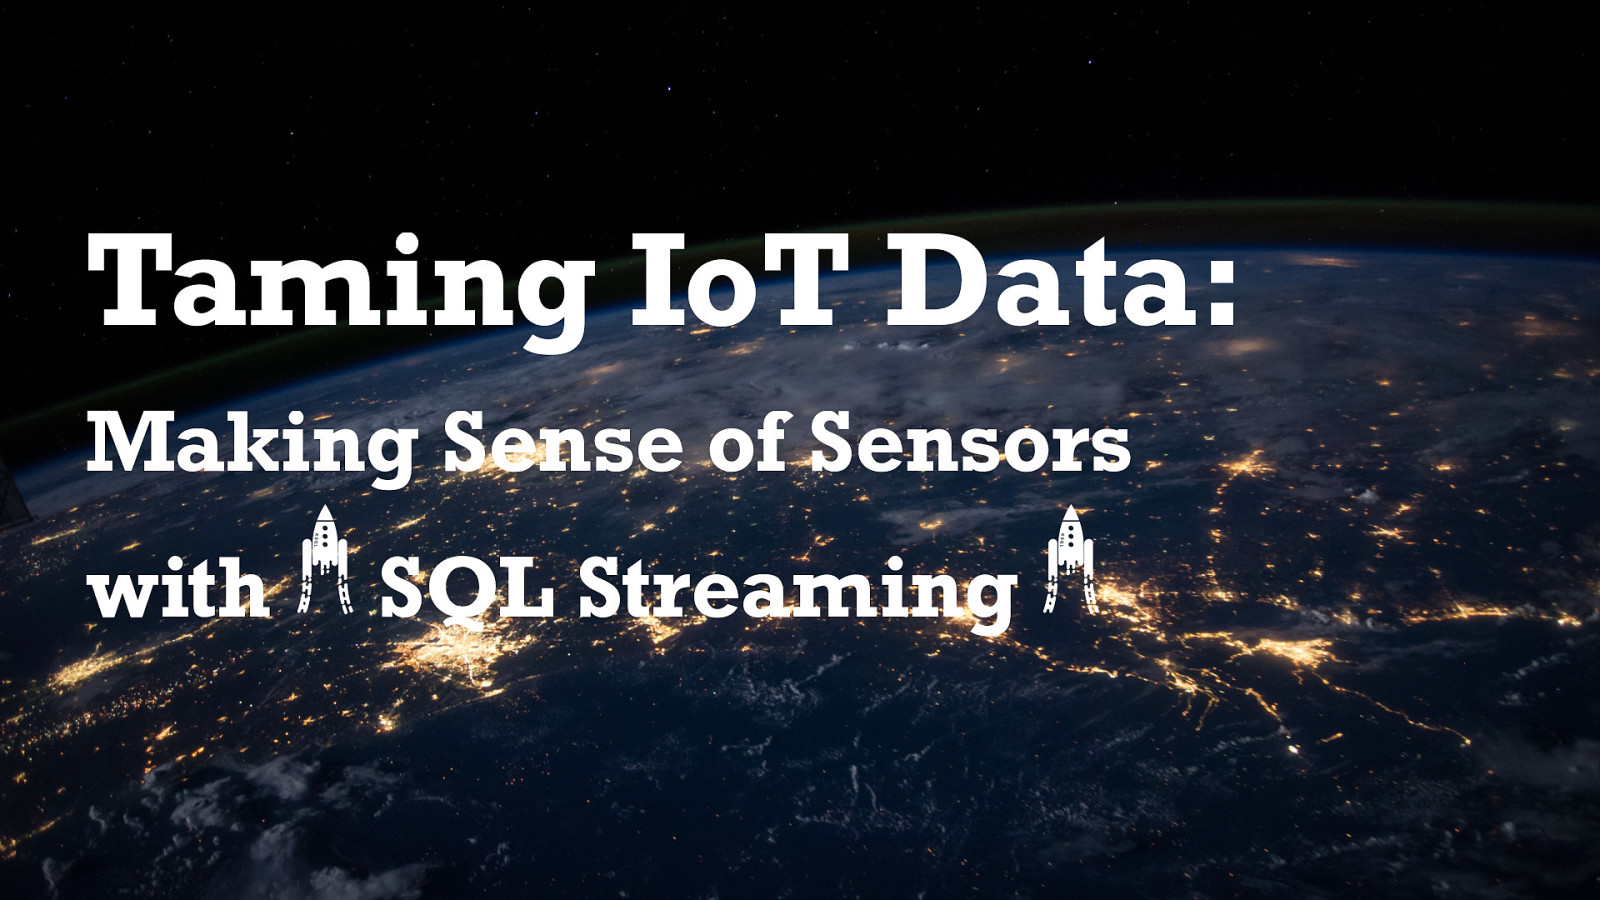 Taming IoT Data: Making Sense of Sensors with SQL Streaming